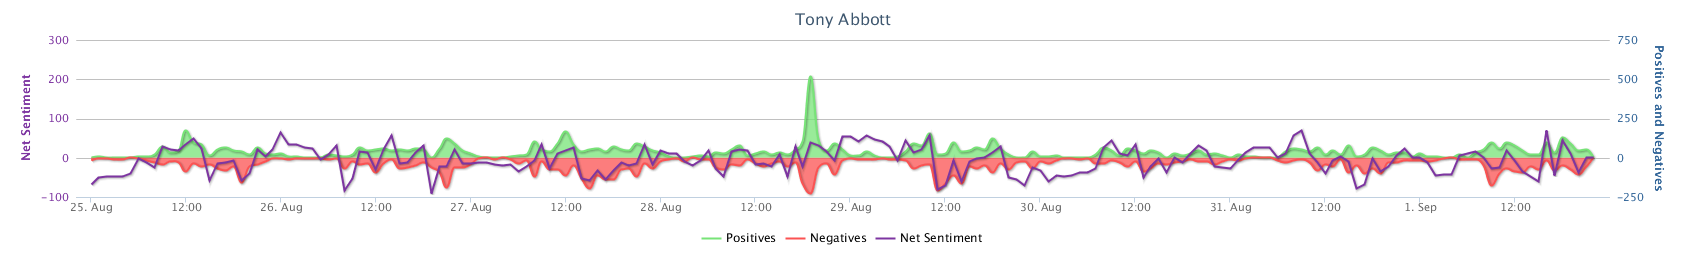 Net Sentiment Trend_Tony Abbott.png